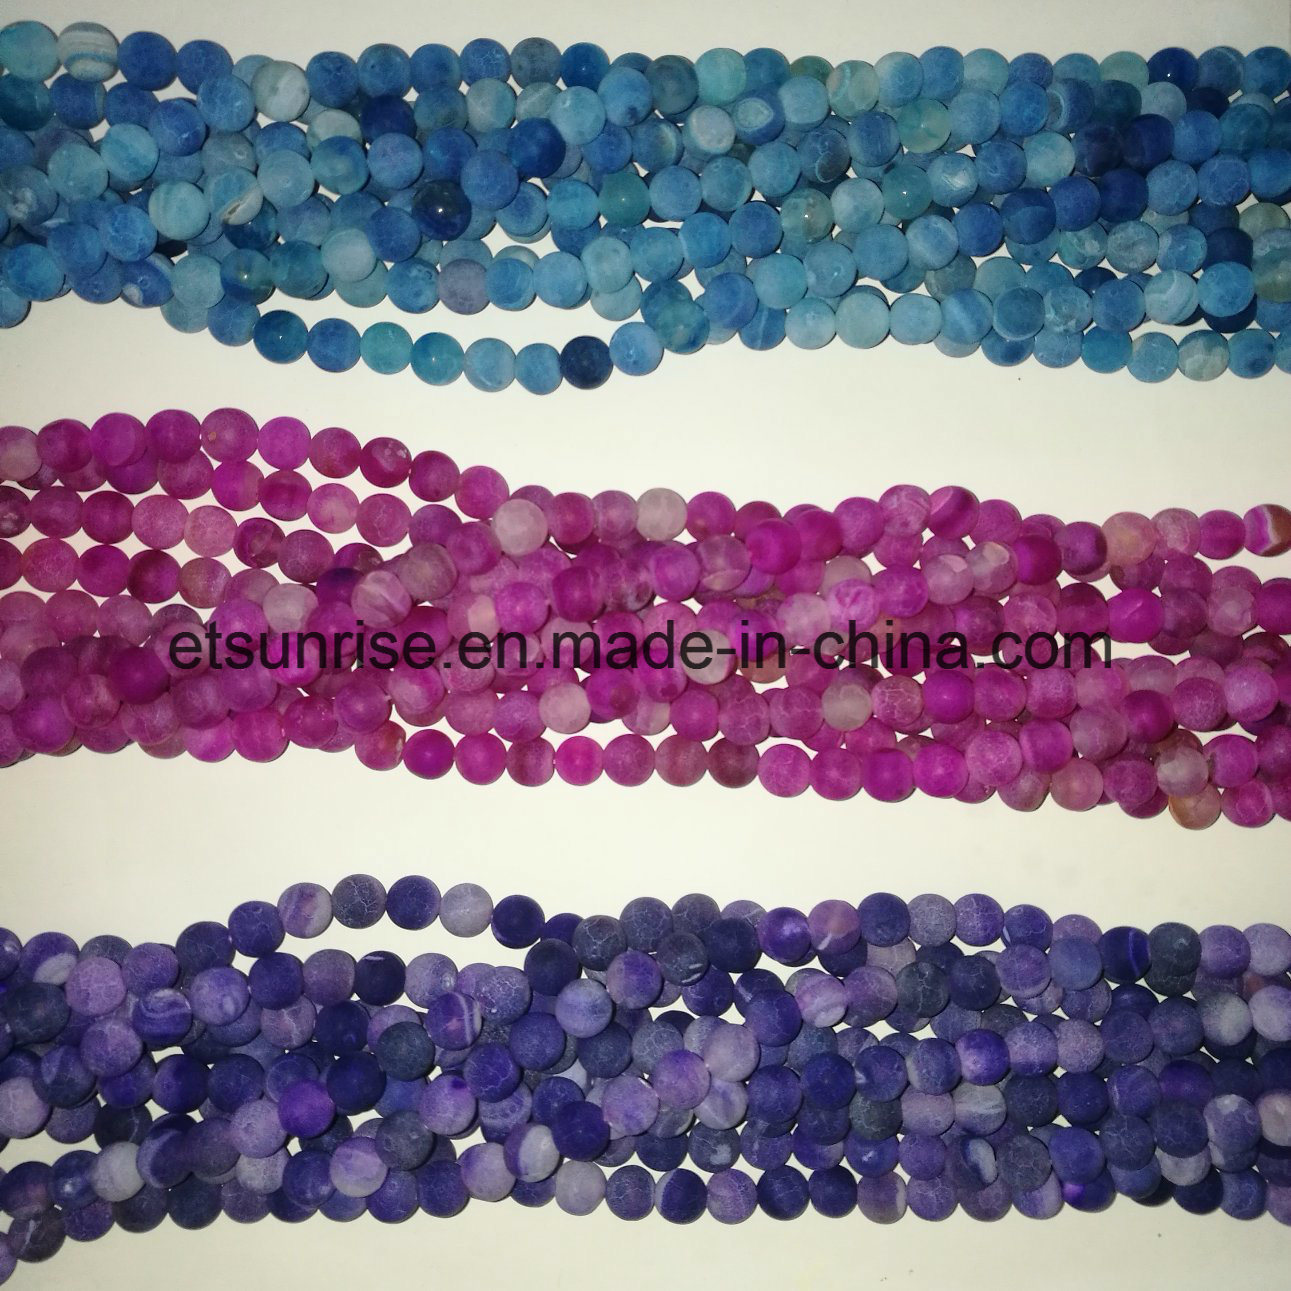 Semi Precious Stone Natural Crystal Matte Frosted Finished Cracked Agate Onyx Bead